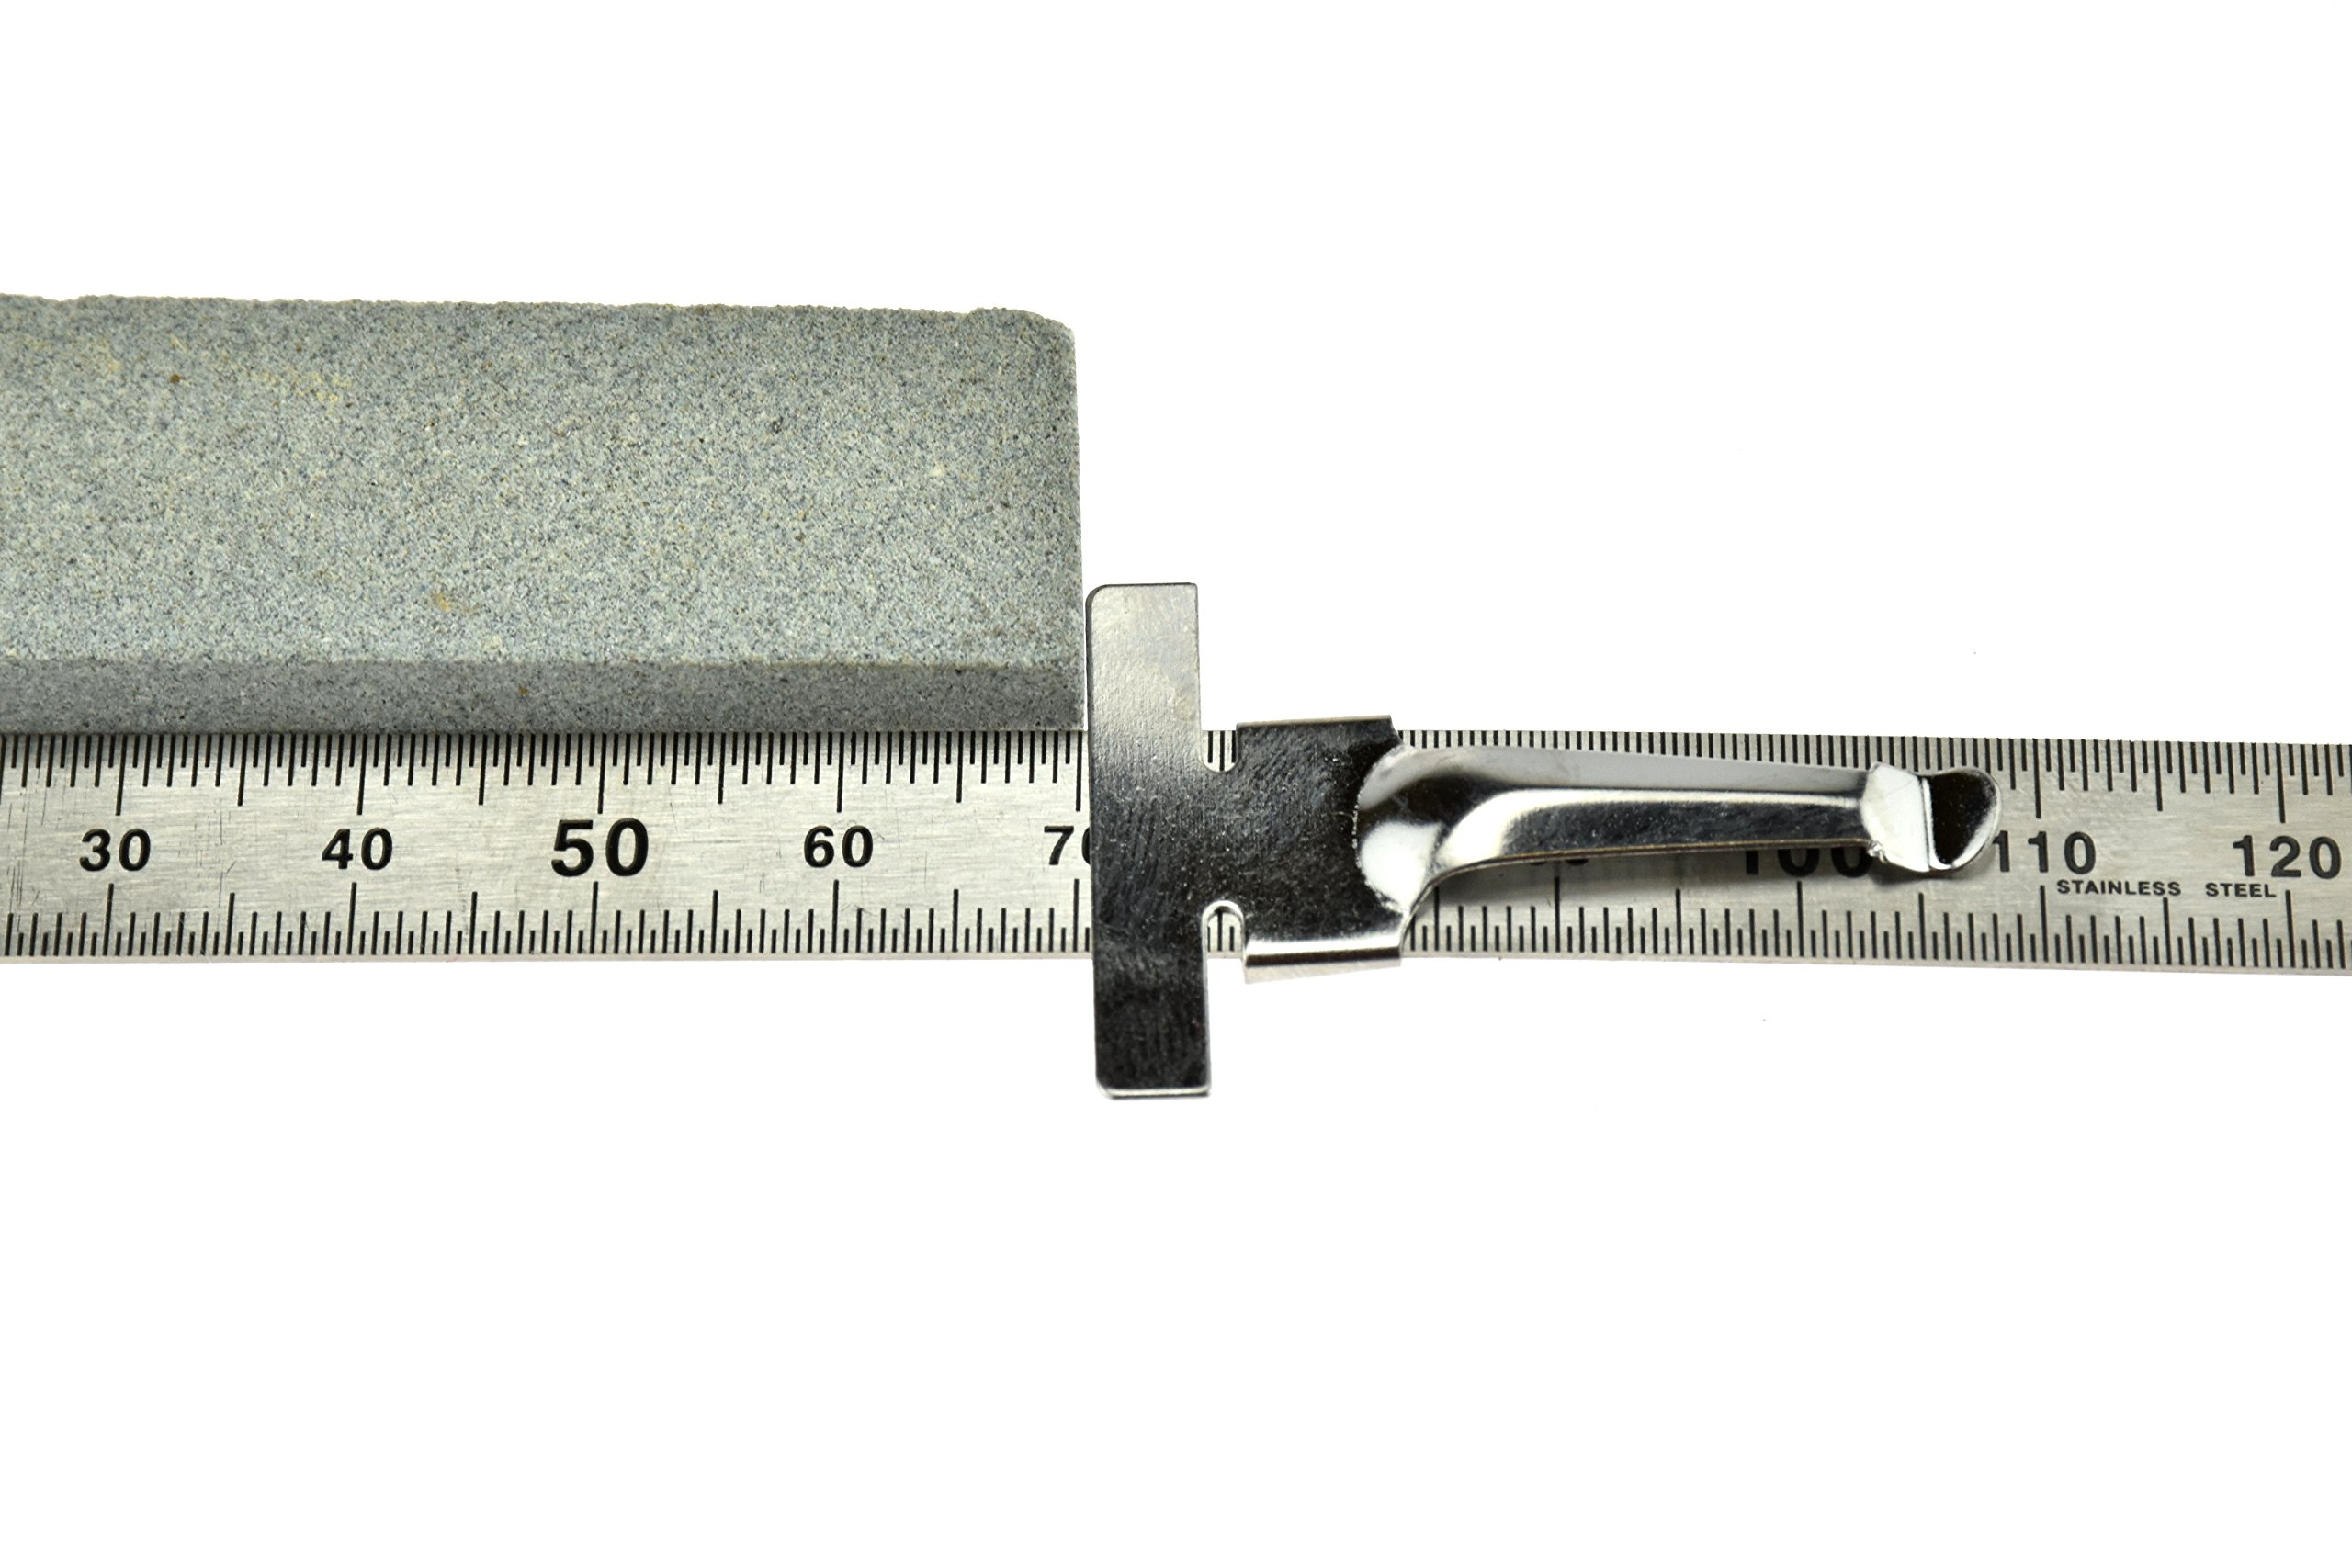 SE 925PSR-2 2-Piece Stainless Steel SAE and Metric Ruler Set with Detachable Clips by SE (Image #4)